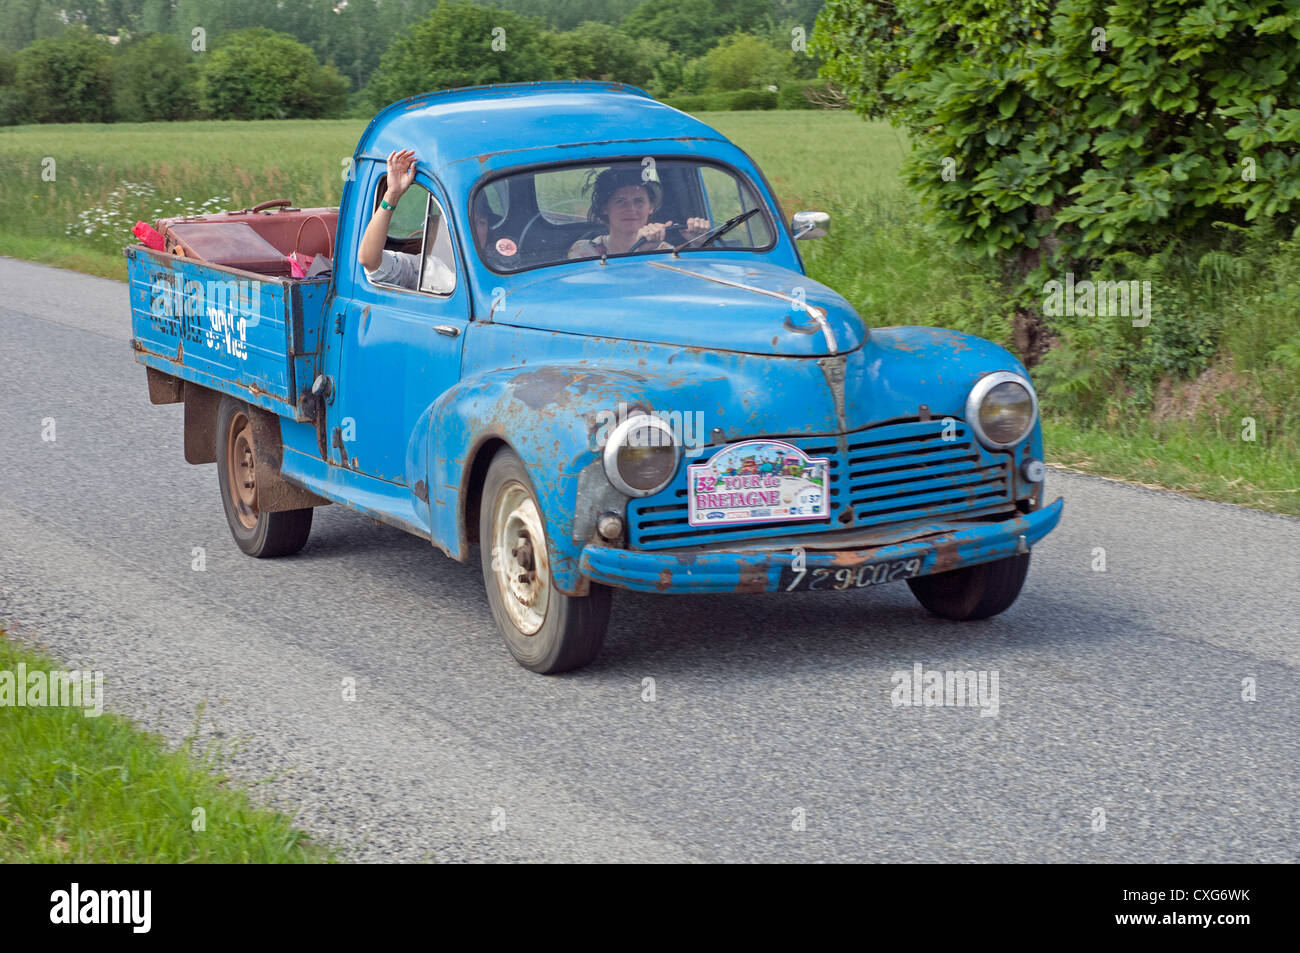 Peugeot 203 High Resolution Stock Photography And Images Alamy